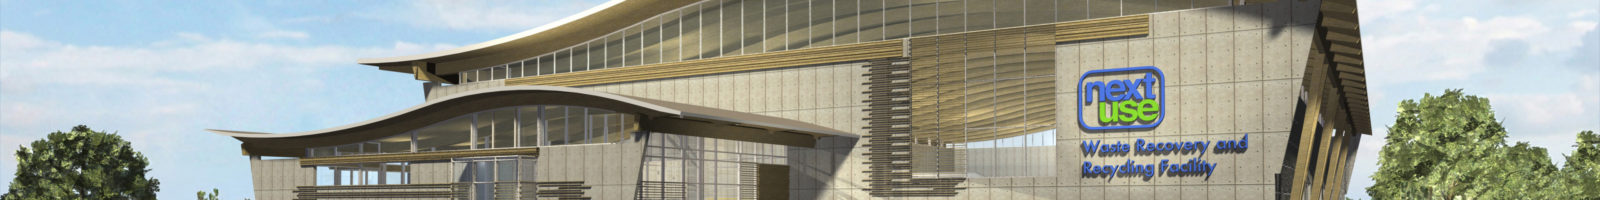 Belkorp Recycling exterior render